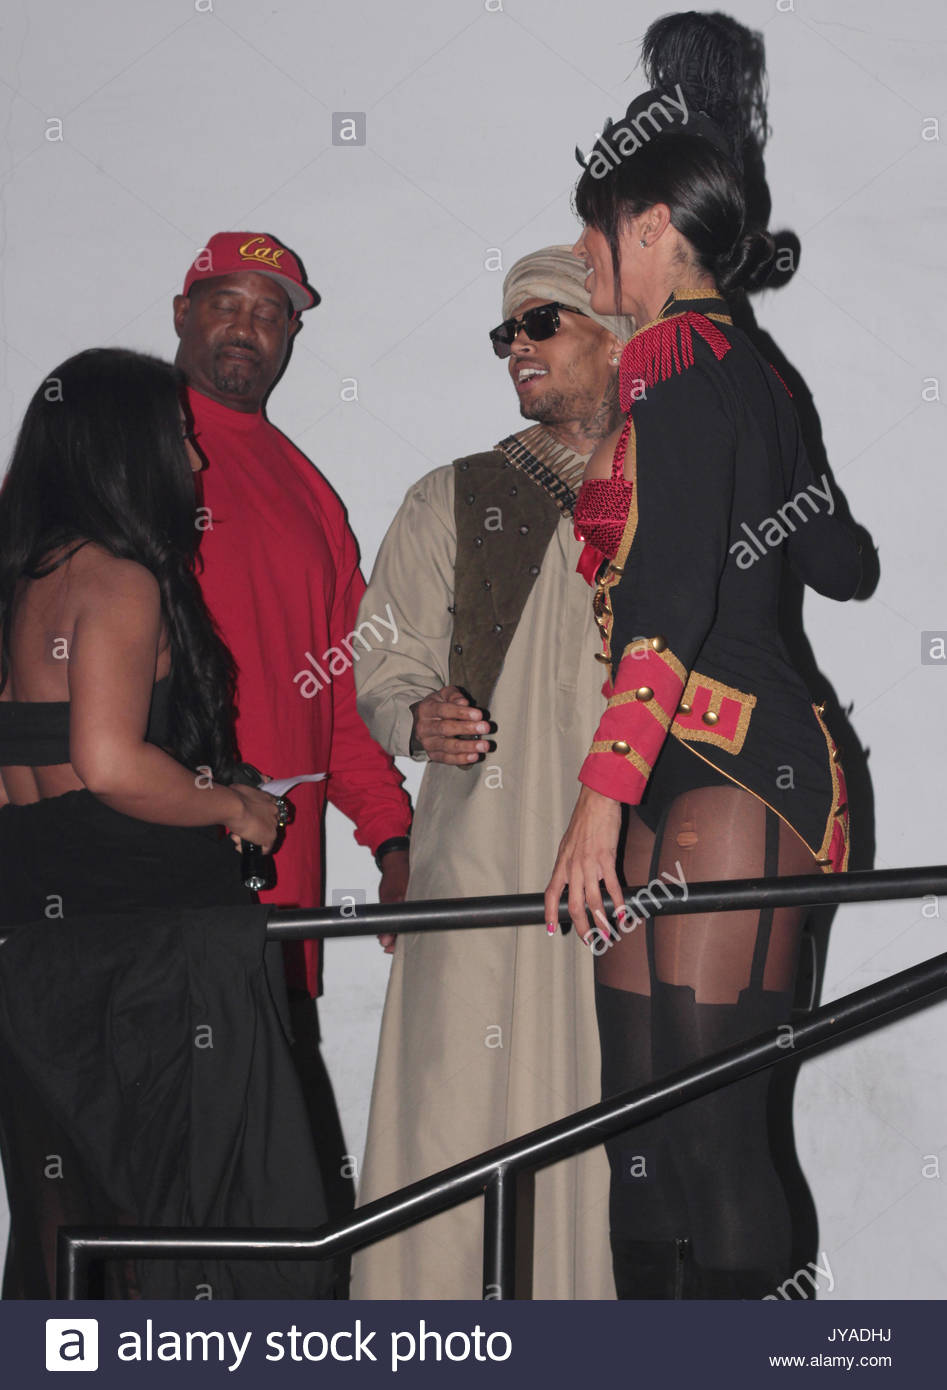 christian audigier kevin hart chris brown and paris hilton in costumes at a halloween party at the graystone club in hollywood ca